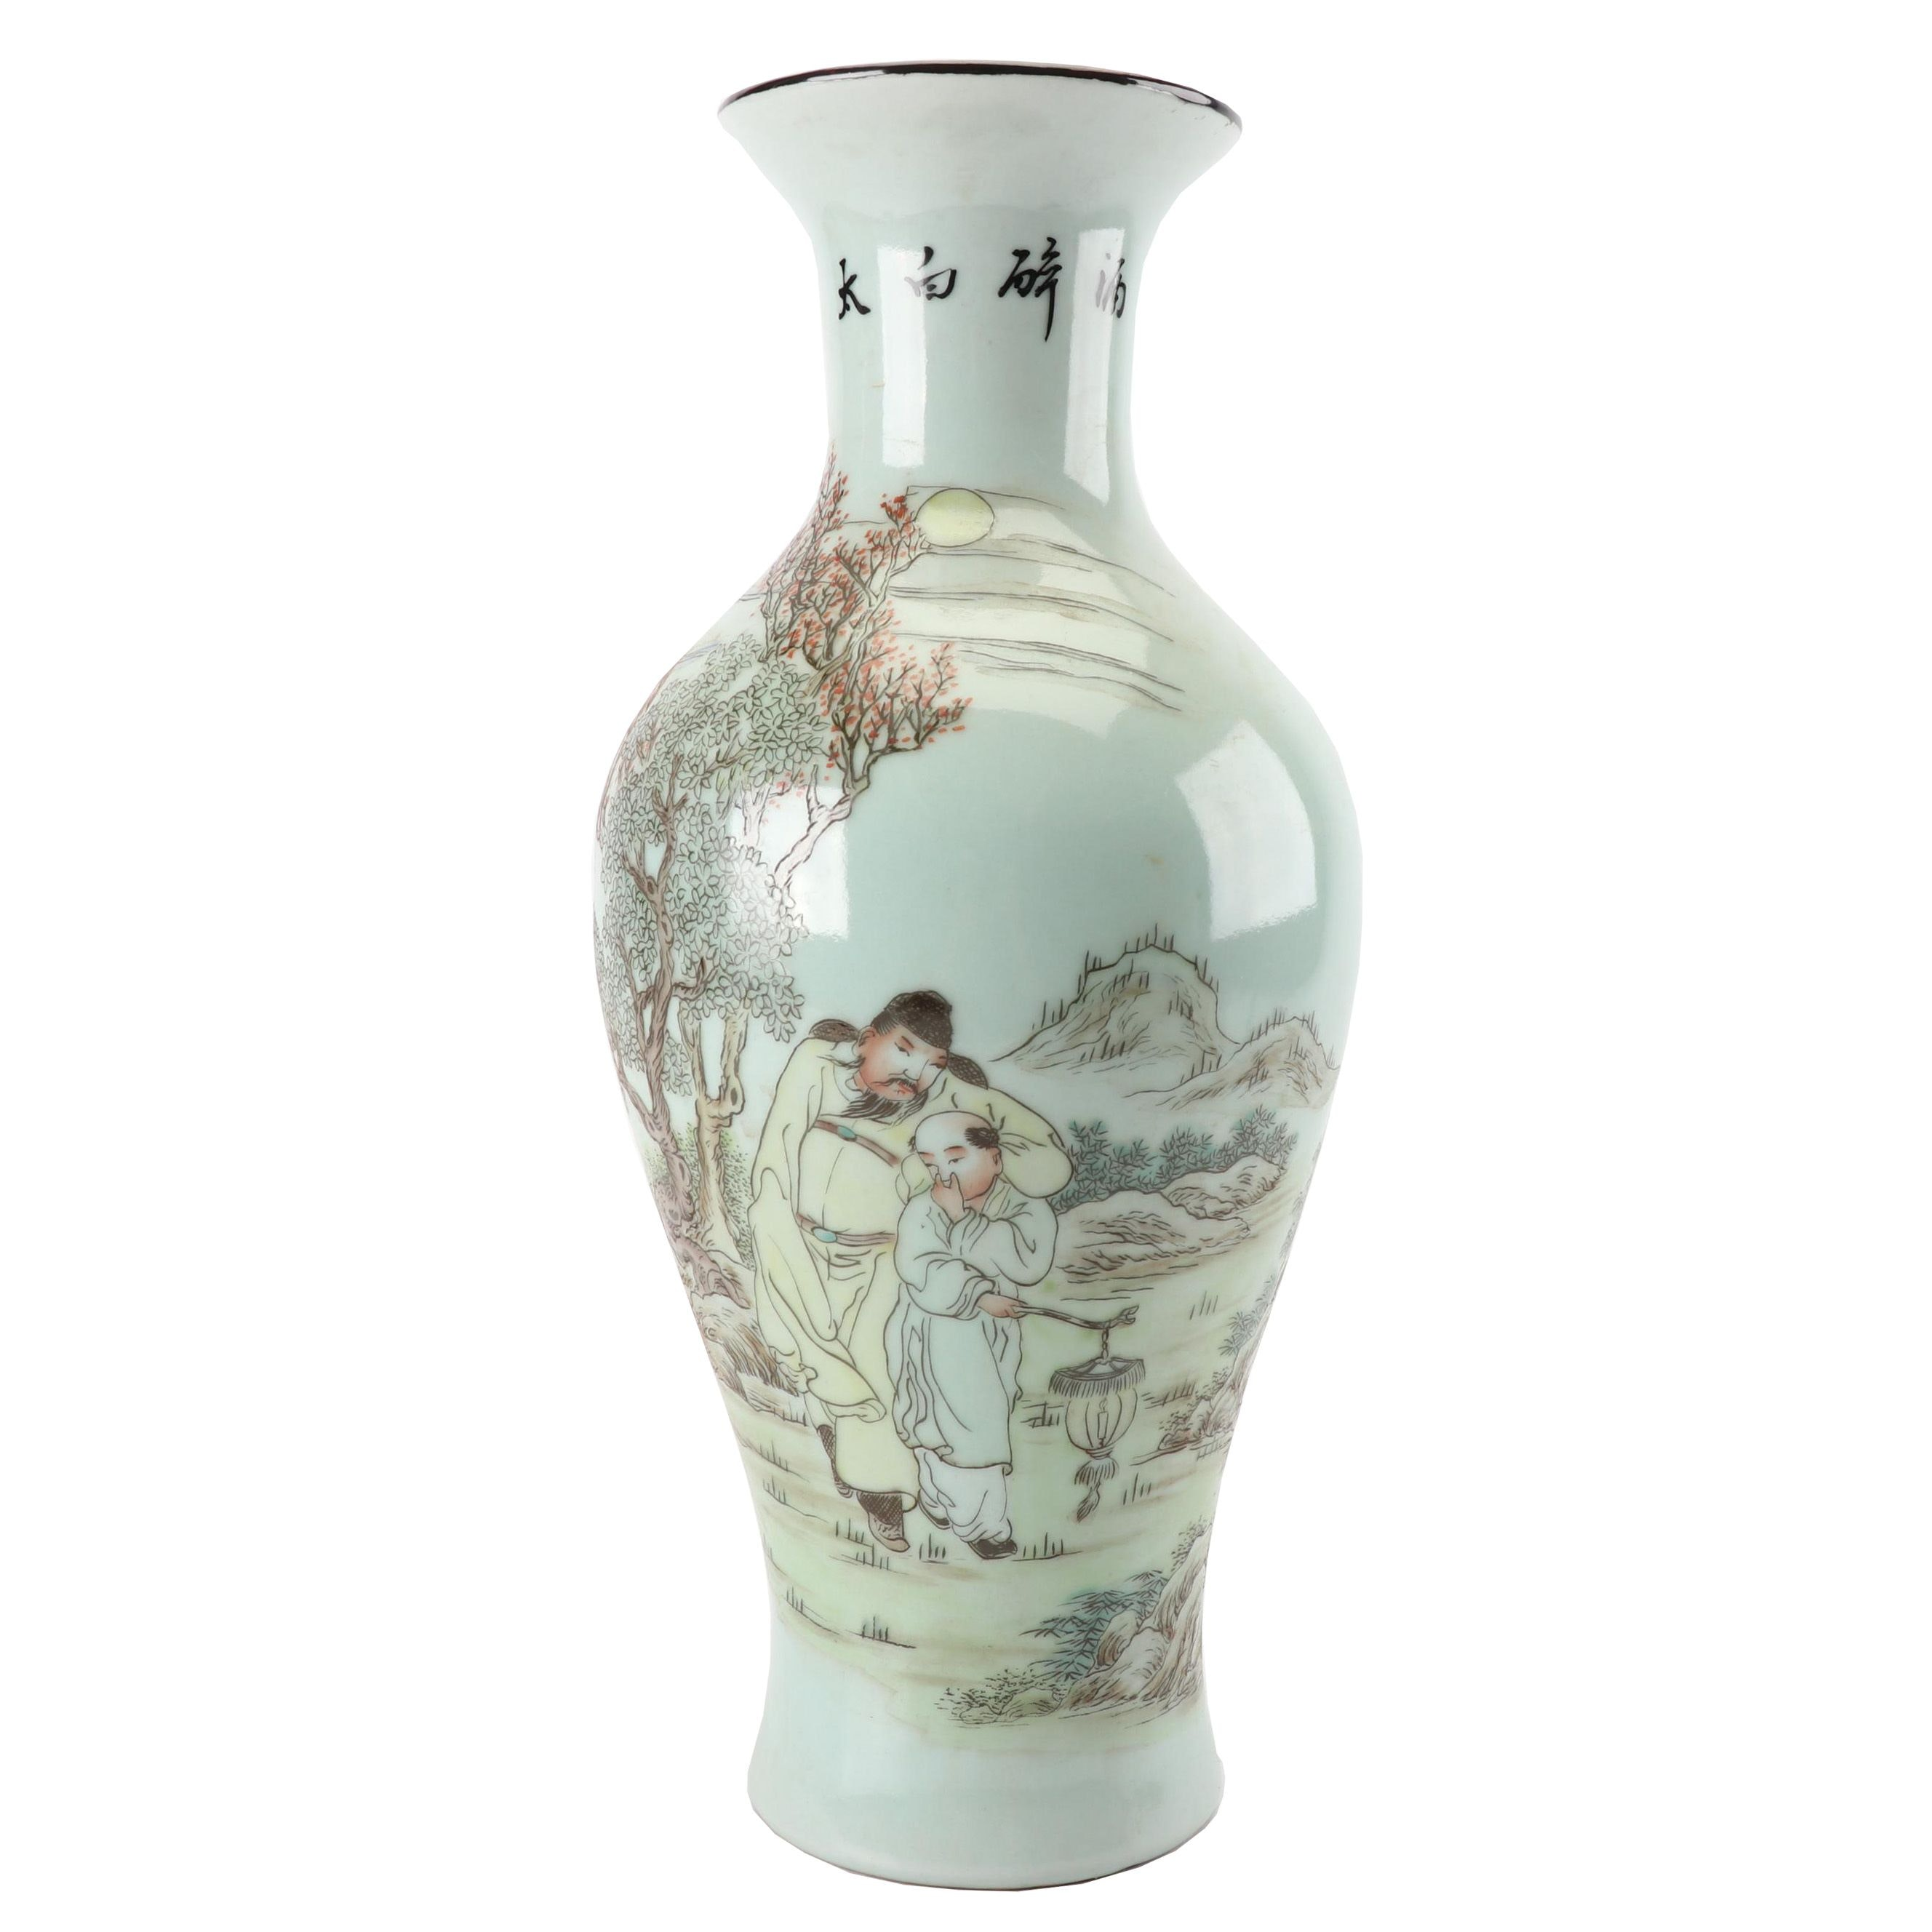 Chinese Pictorial Porcelain Vase